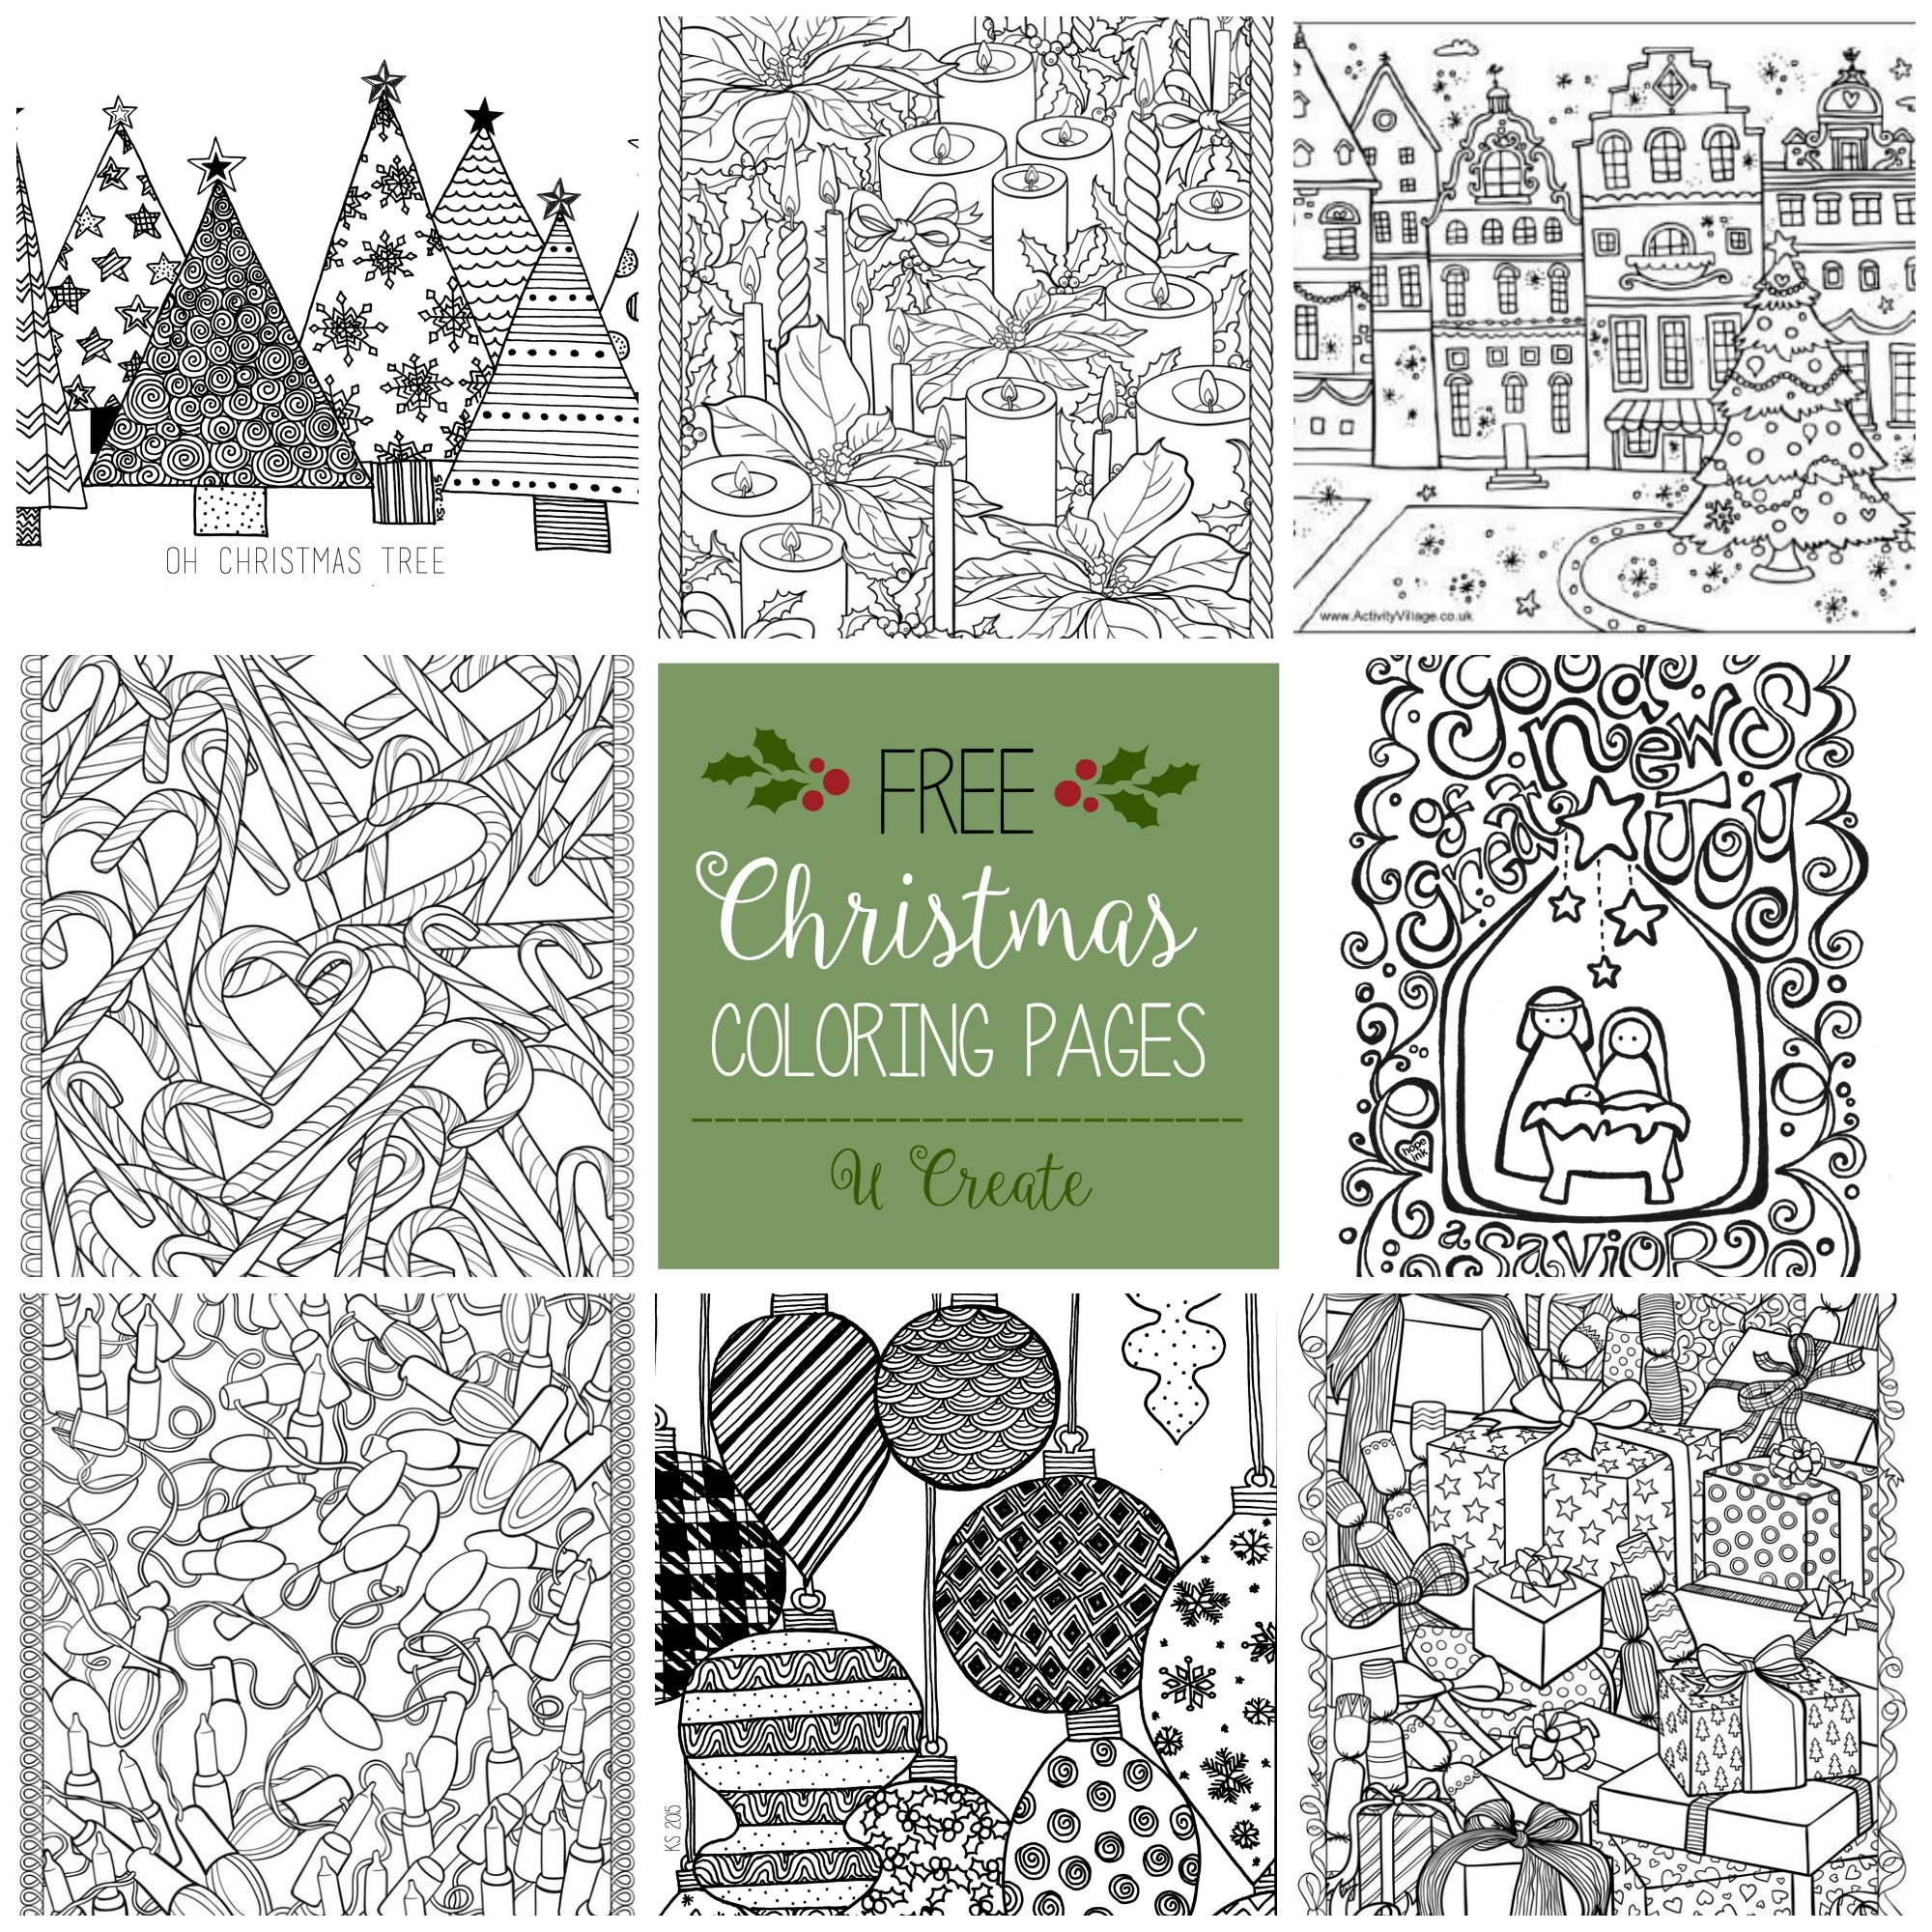 Free Christmas Adult Coloring Pages - U Create - Free Printable Holiday Coloring Pages